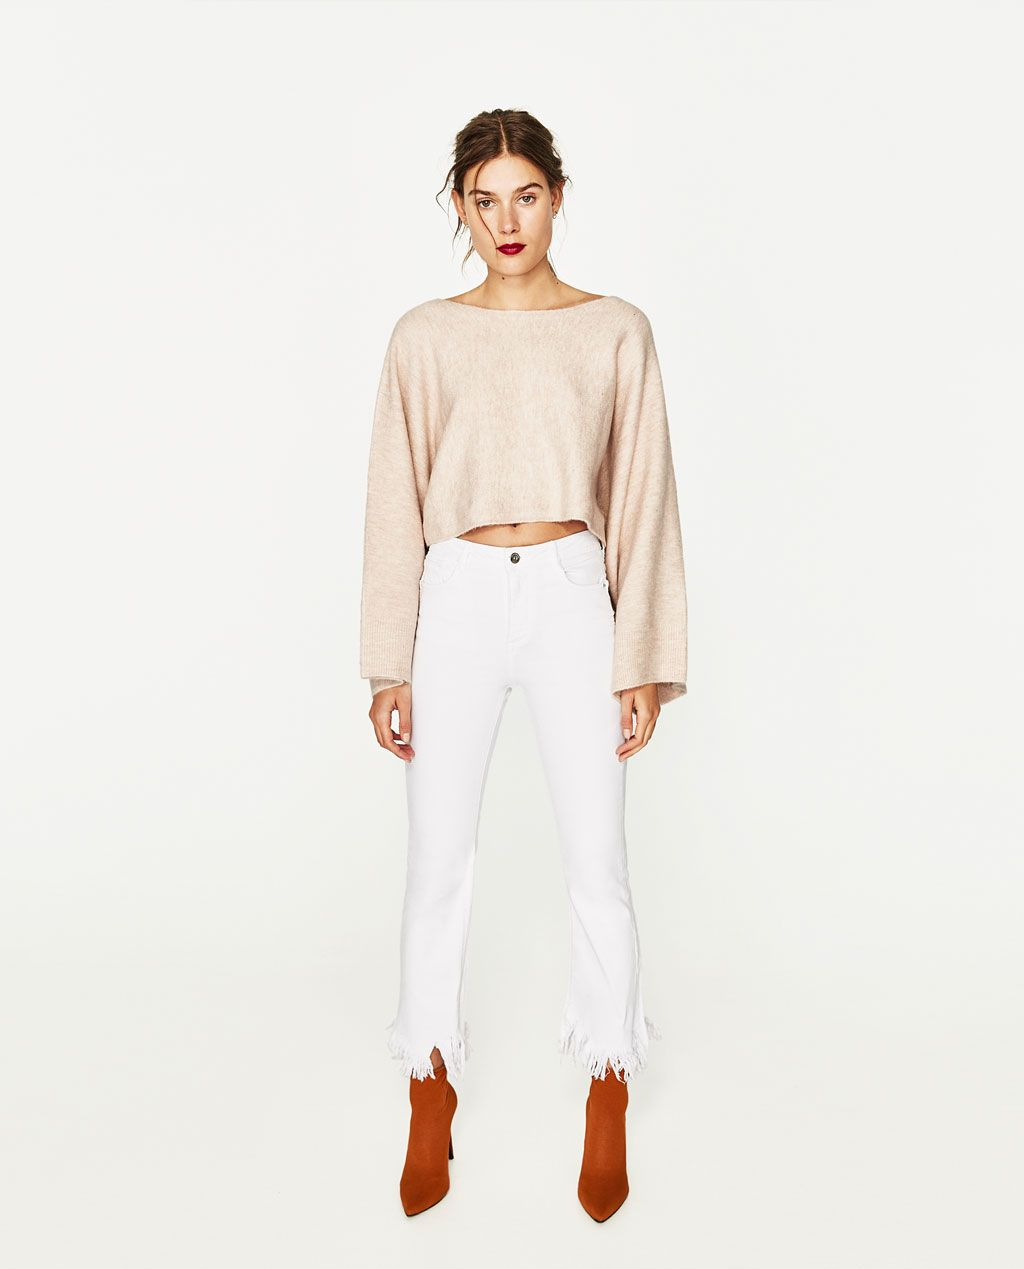 HIGH RISE RELAXED FIT JEANS High Waist JEANS WOMAN | ZARA